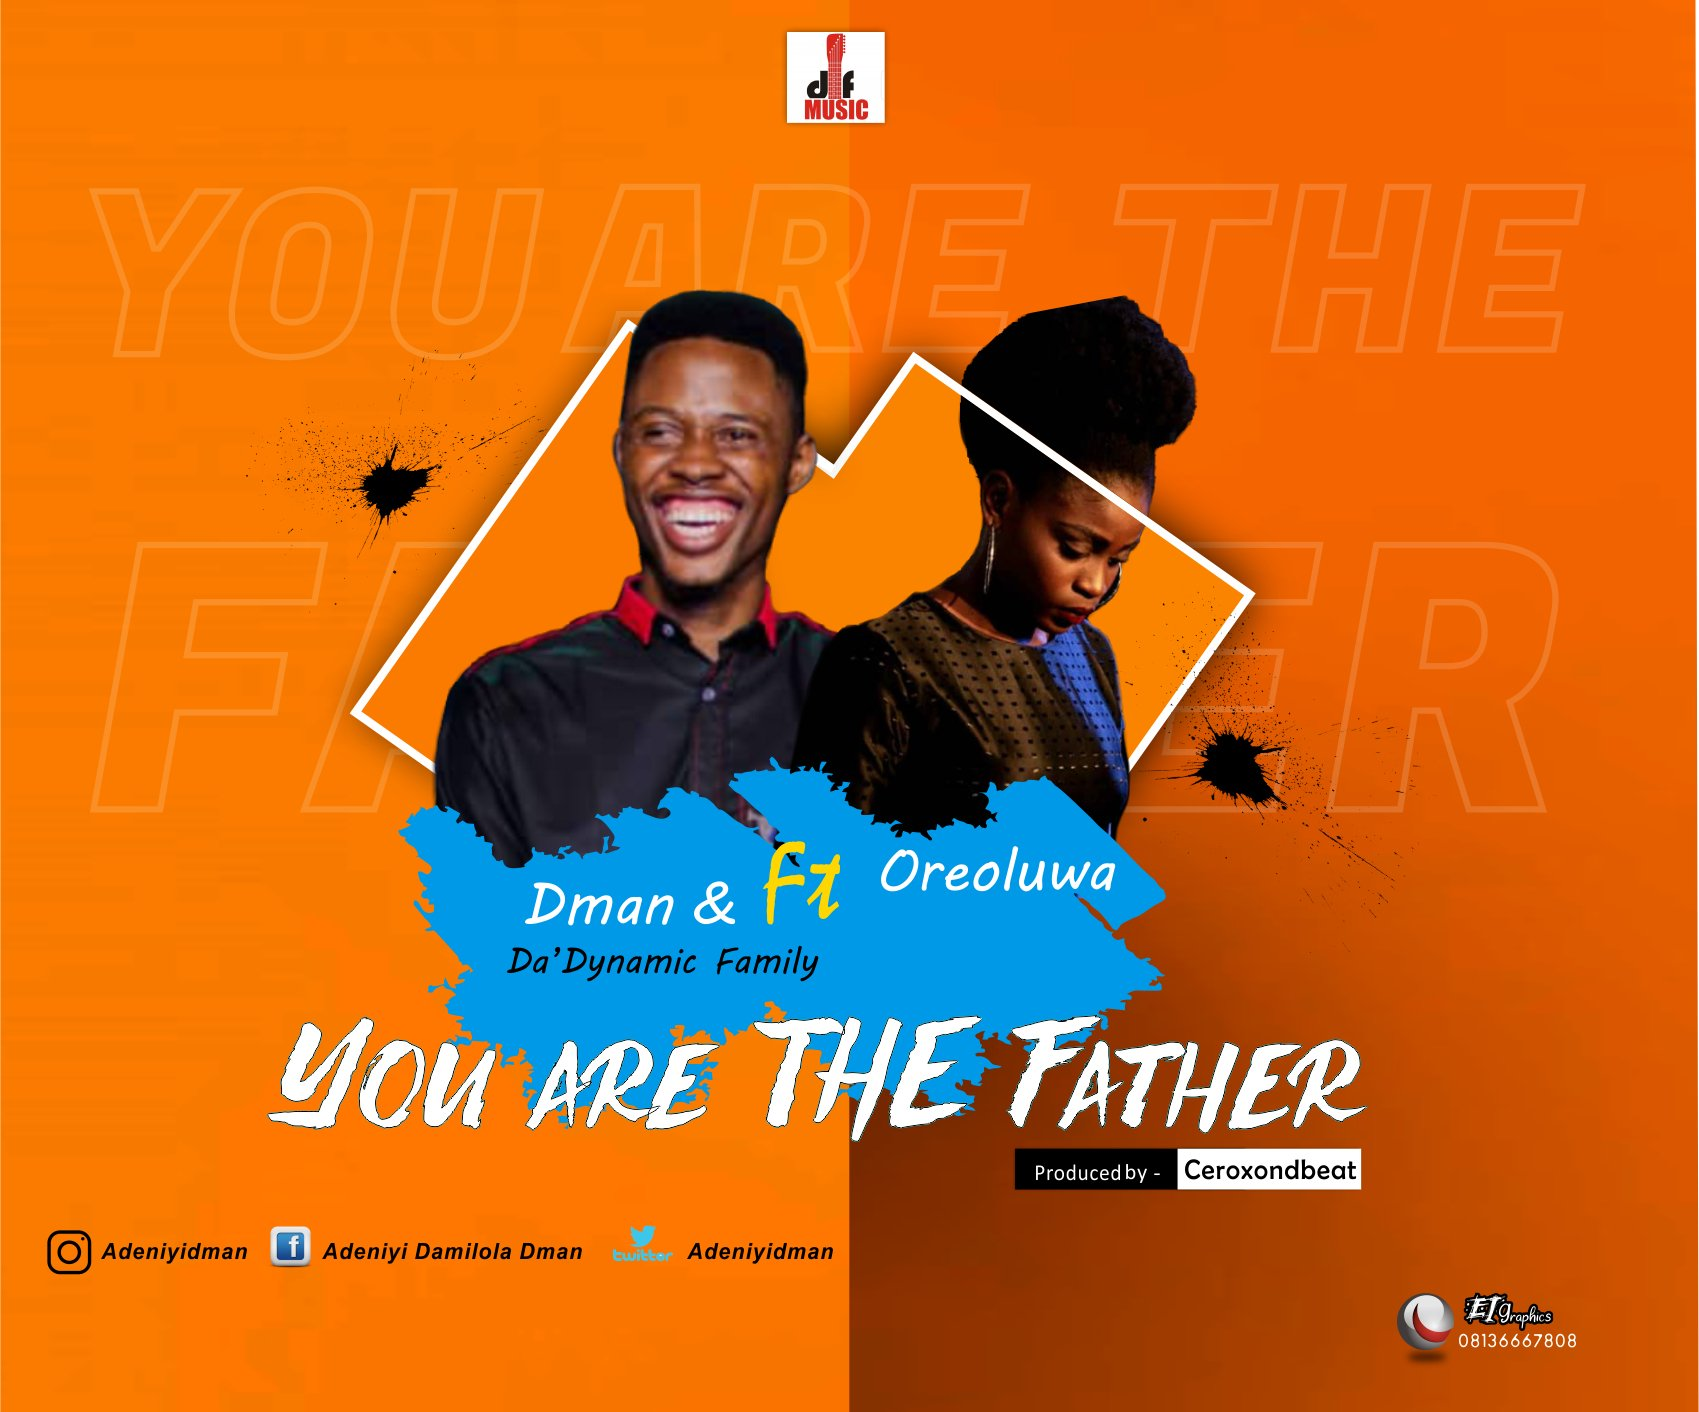 You Are The Father - Dman Ft Oreoluwa